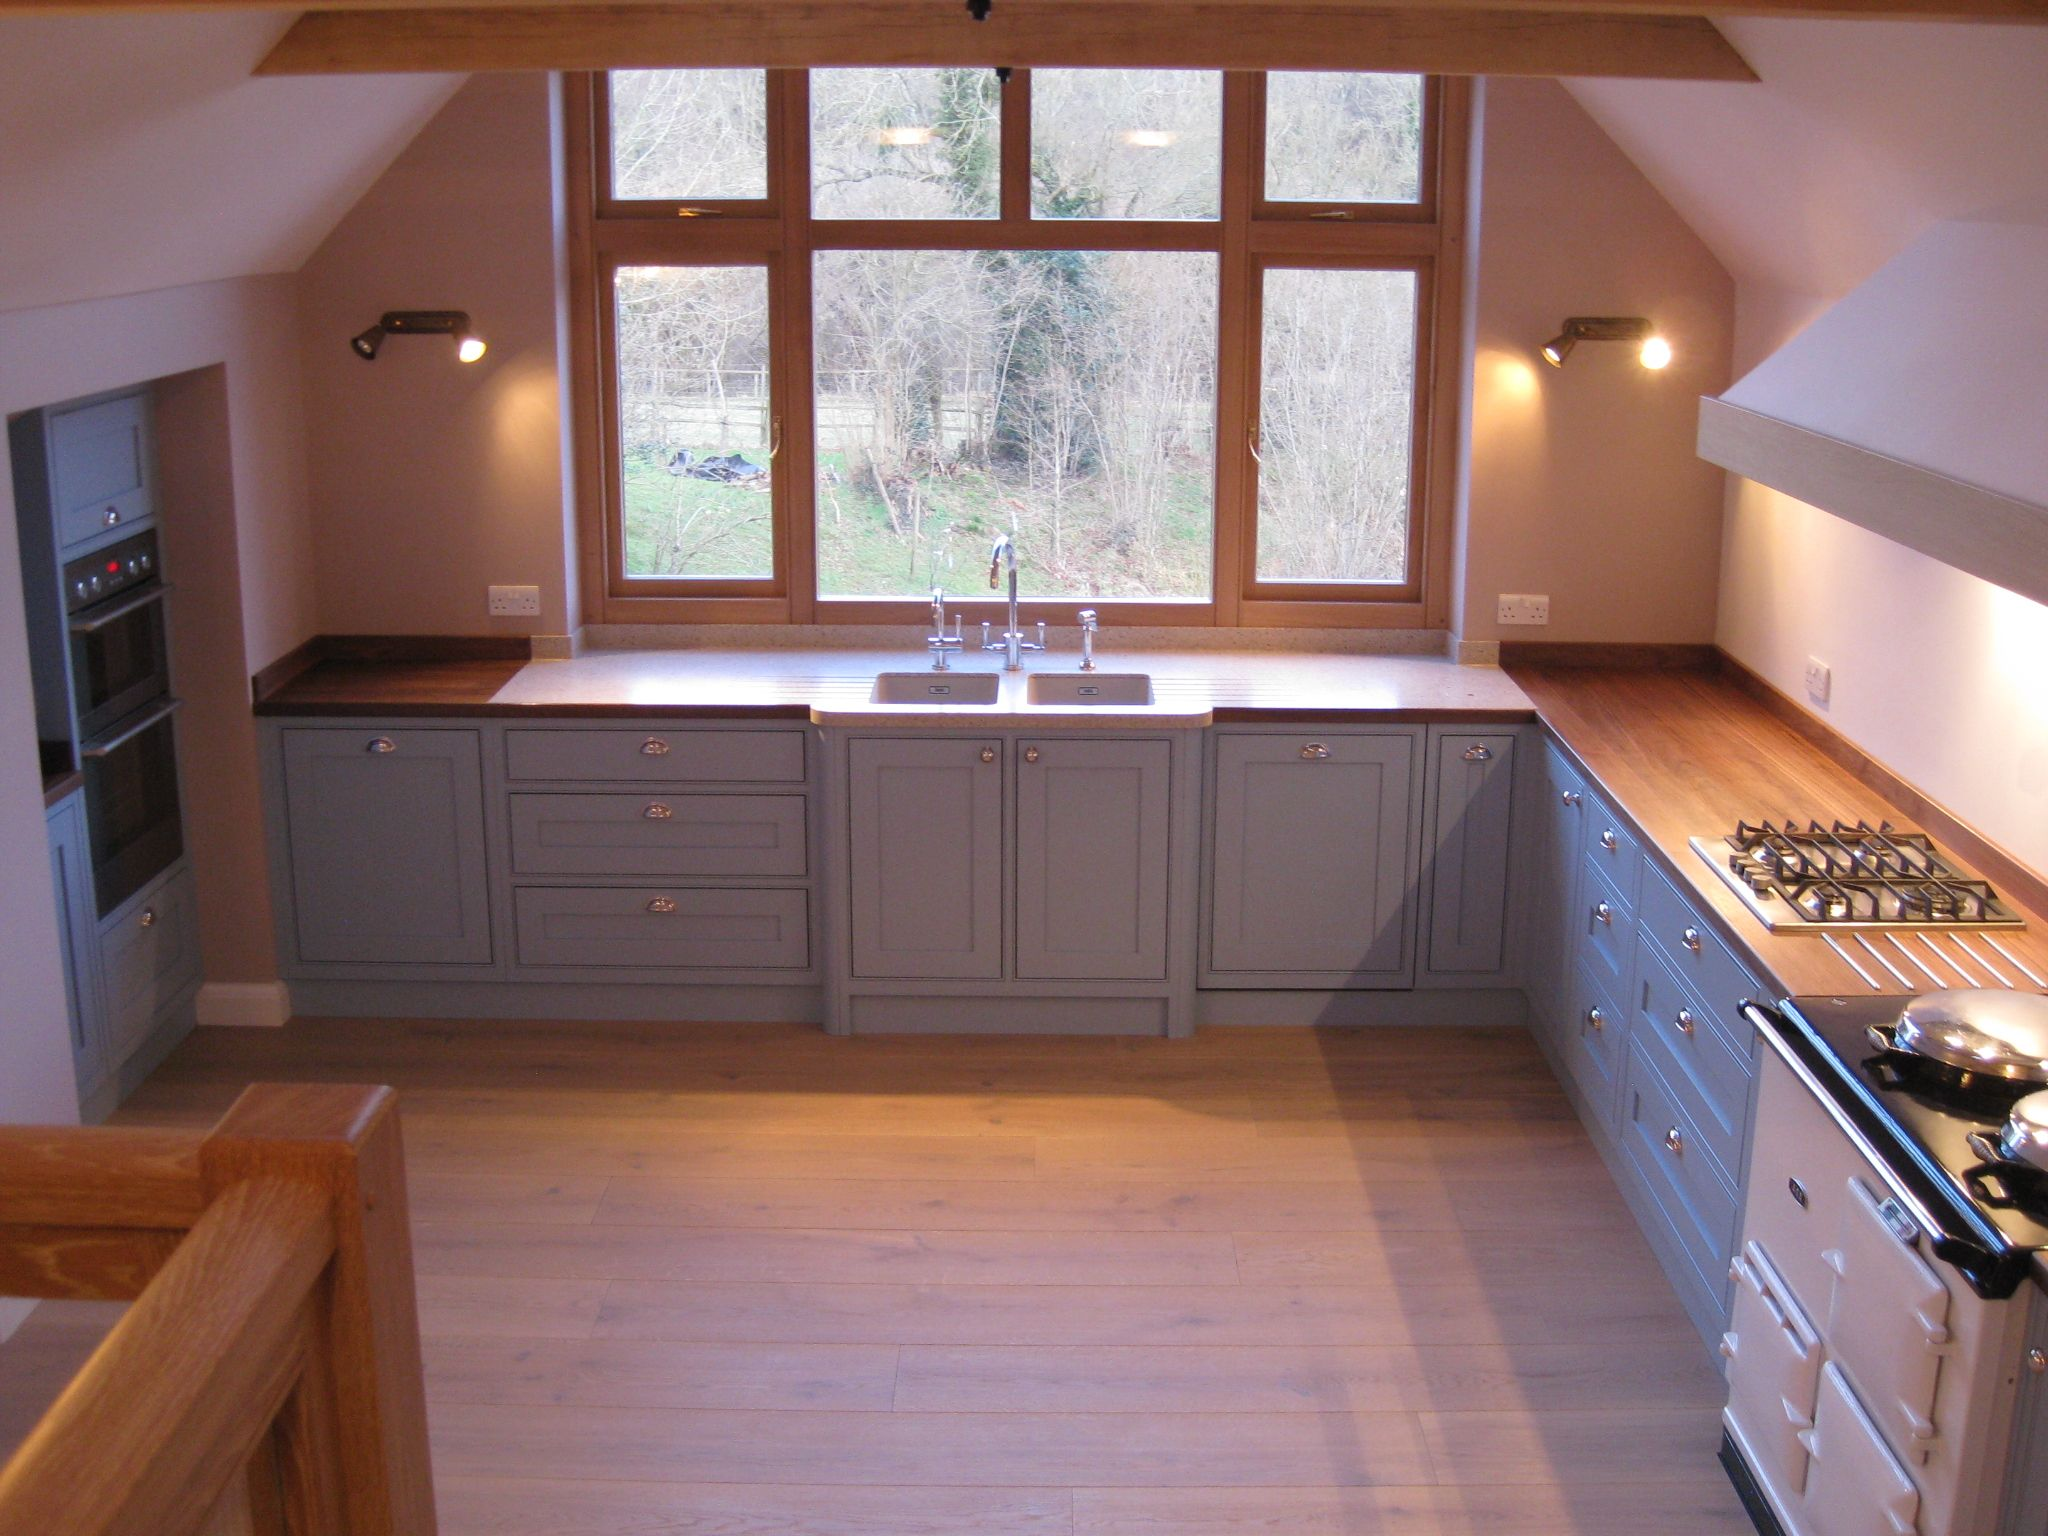 All of our beautiful bespoke handmade kitchens are created